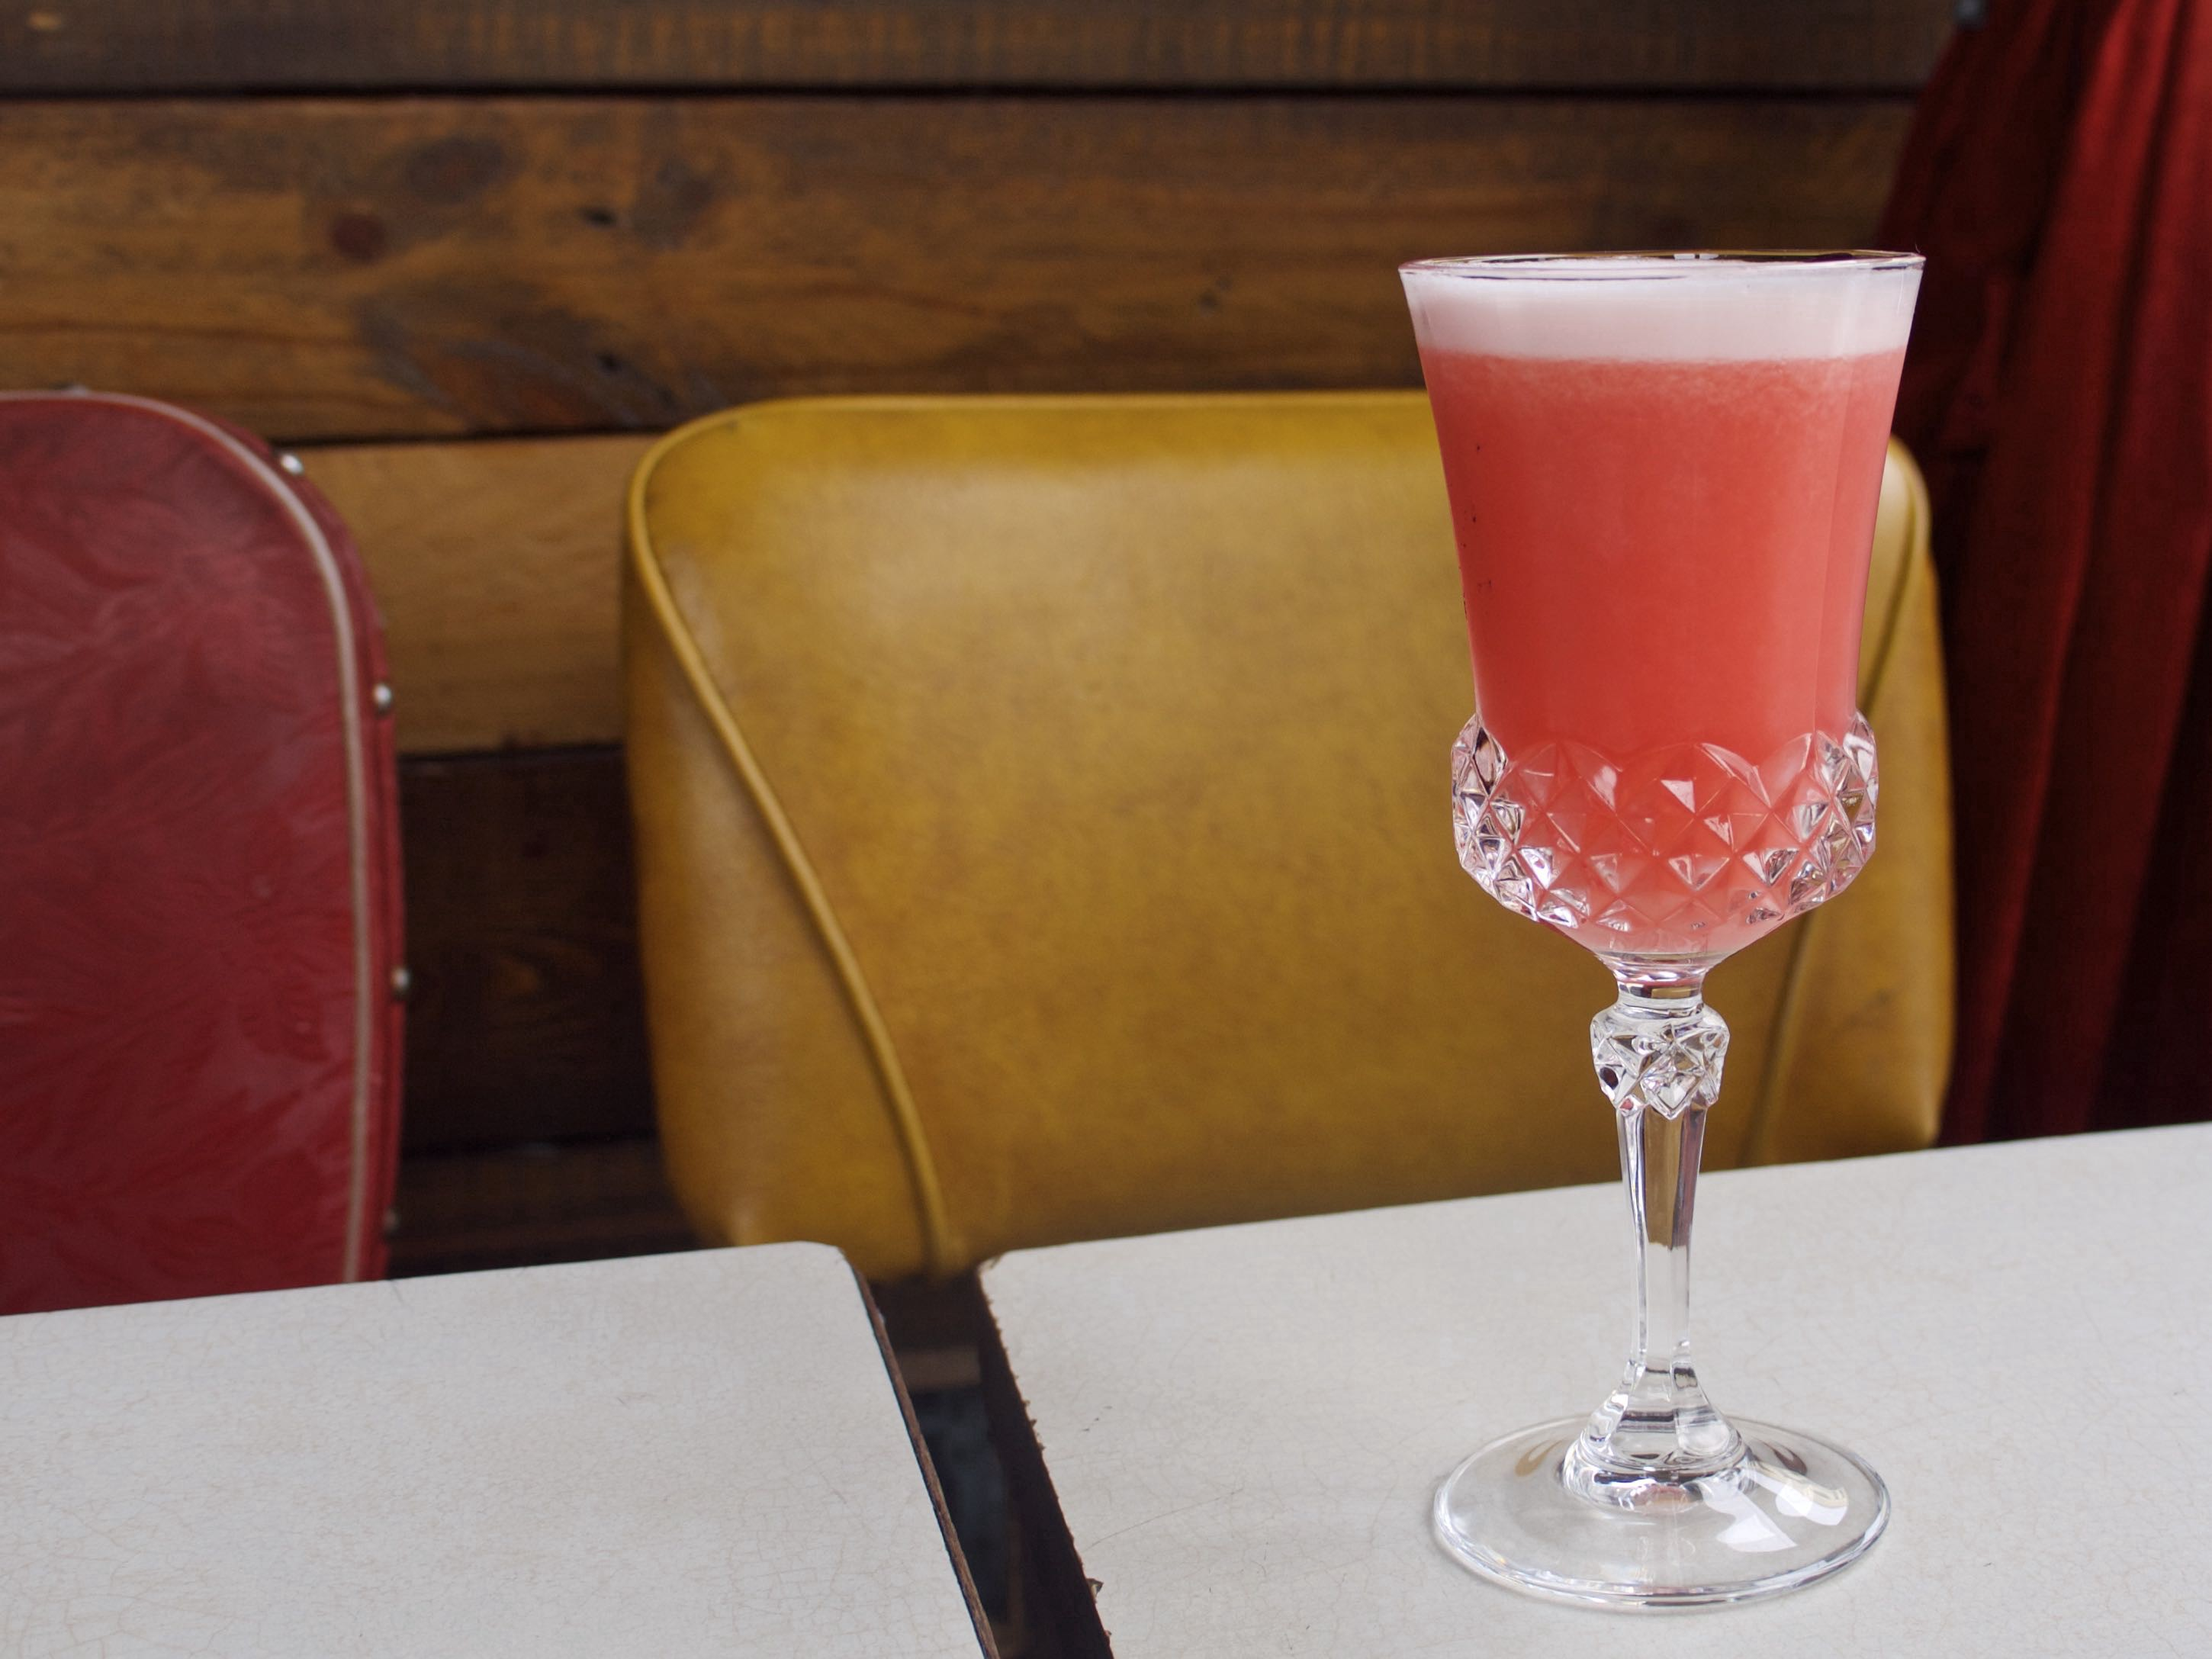 A pink drink in a coupe glass, with a layer of foam on top.